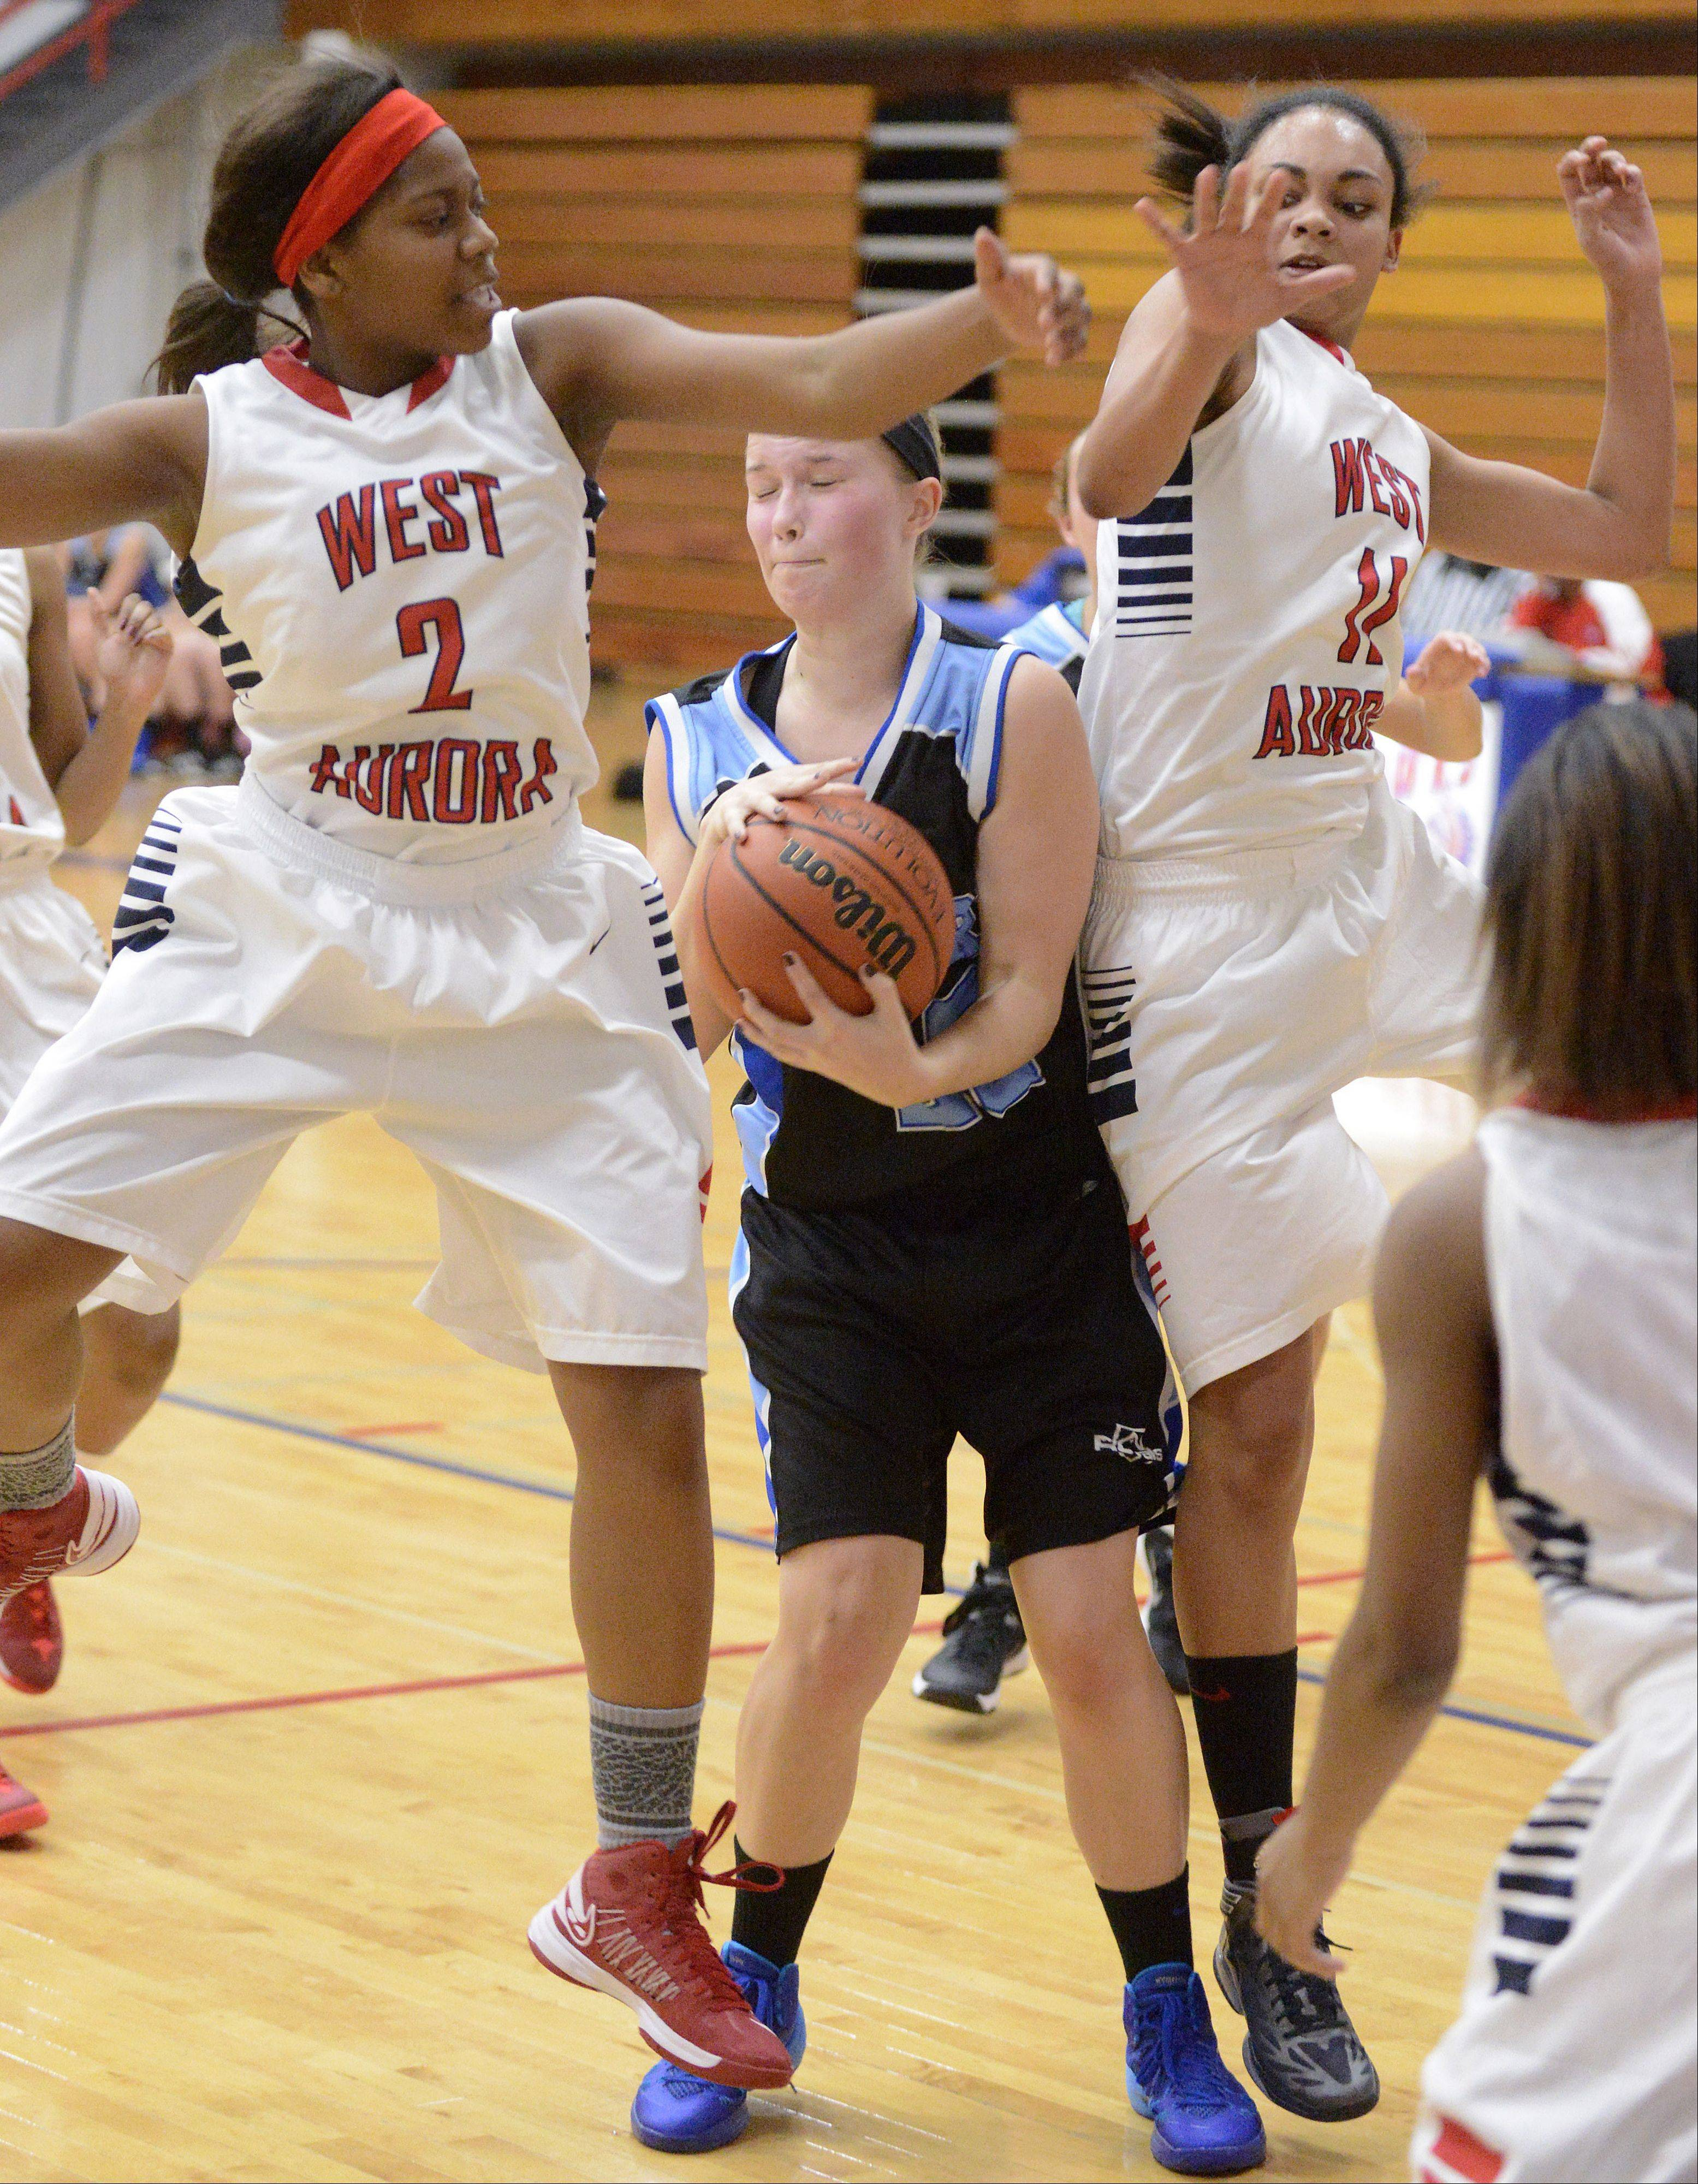 Rosary's Taylor Drozdowski is swarmed by West Aurora's Ashley Williams and Abriya Zeitz.